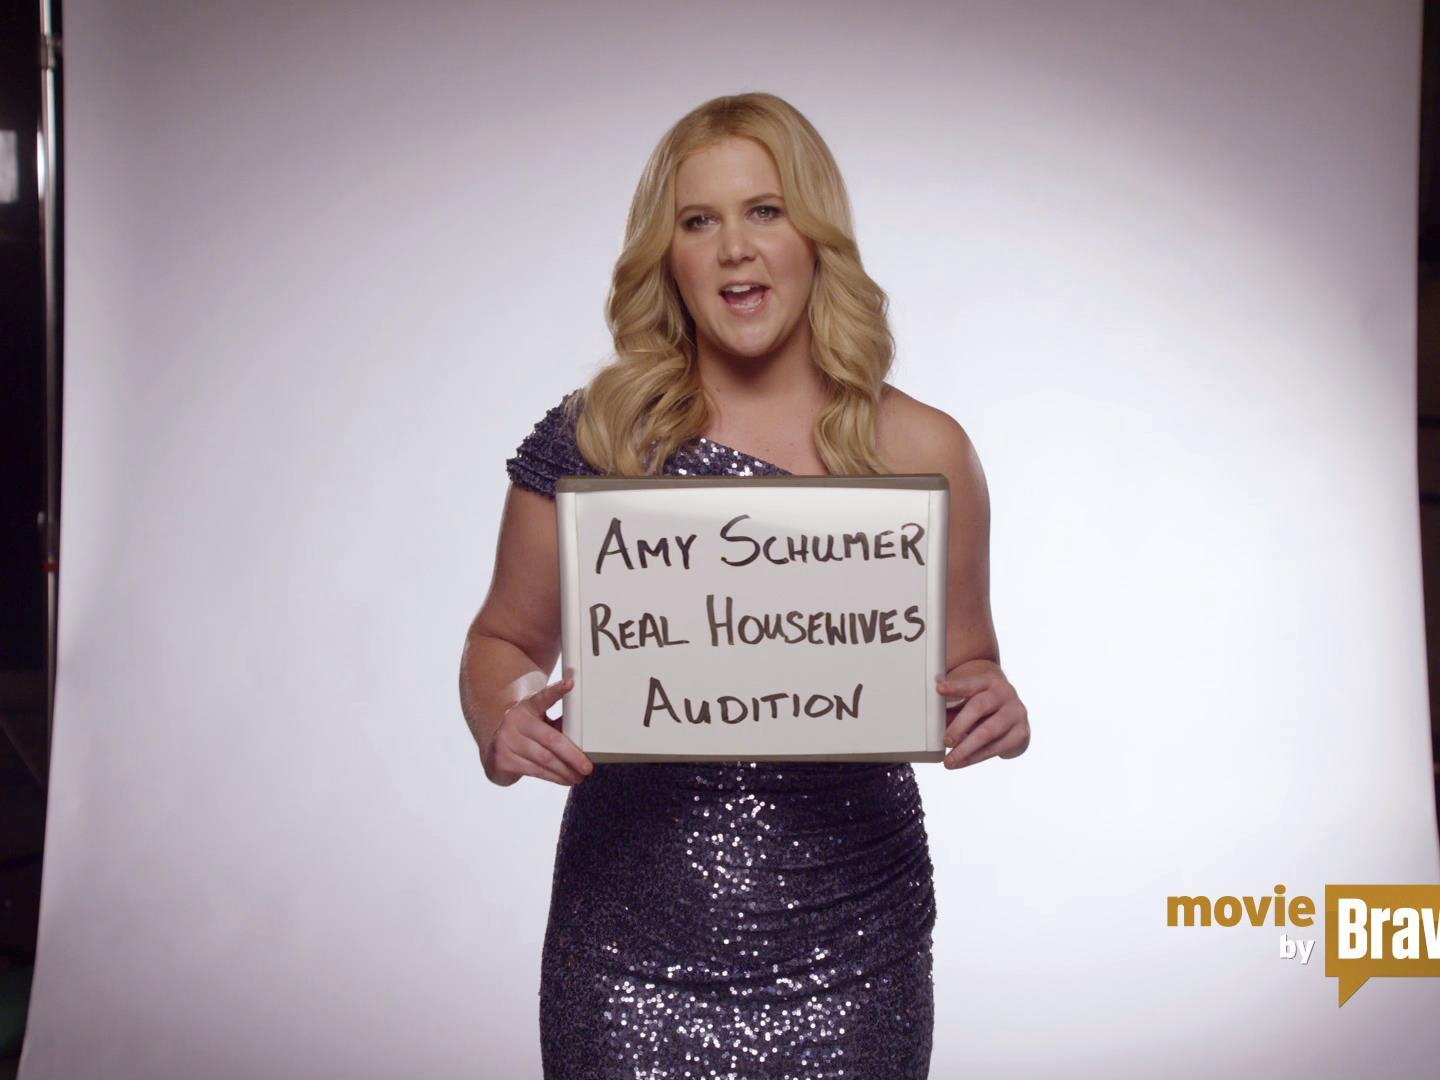 Amy Schumer's Real Housewives Audition Thumbnail